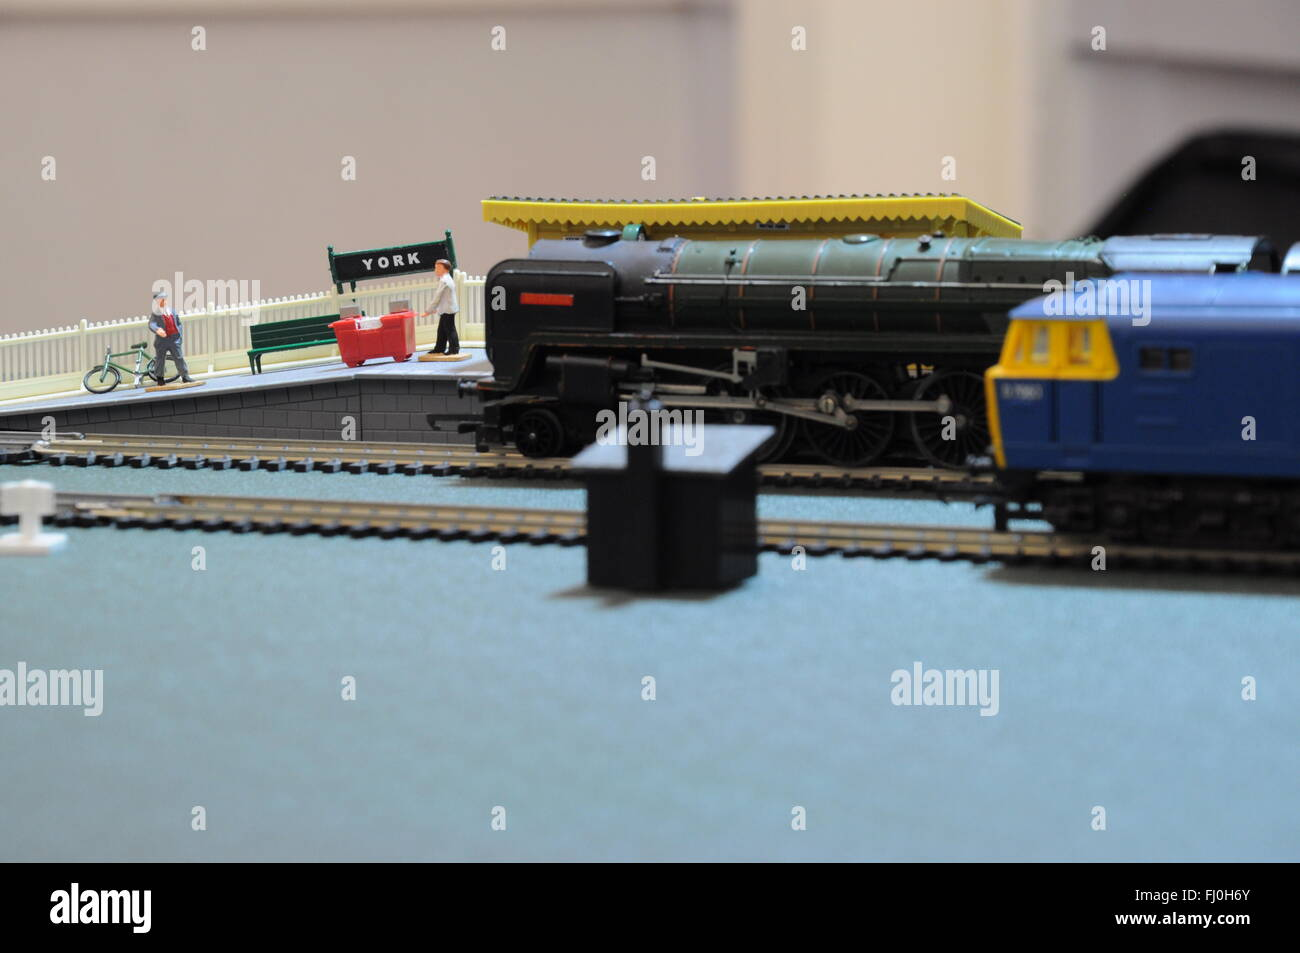 Model Train Set arranged waiting at York station - Stock Image